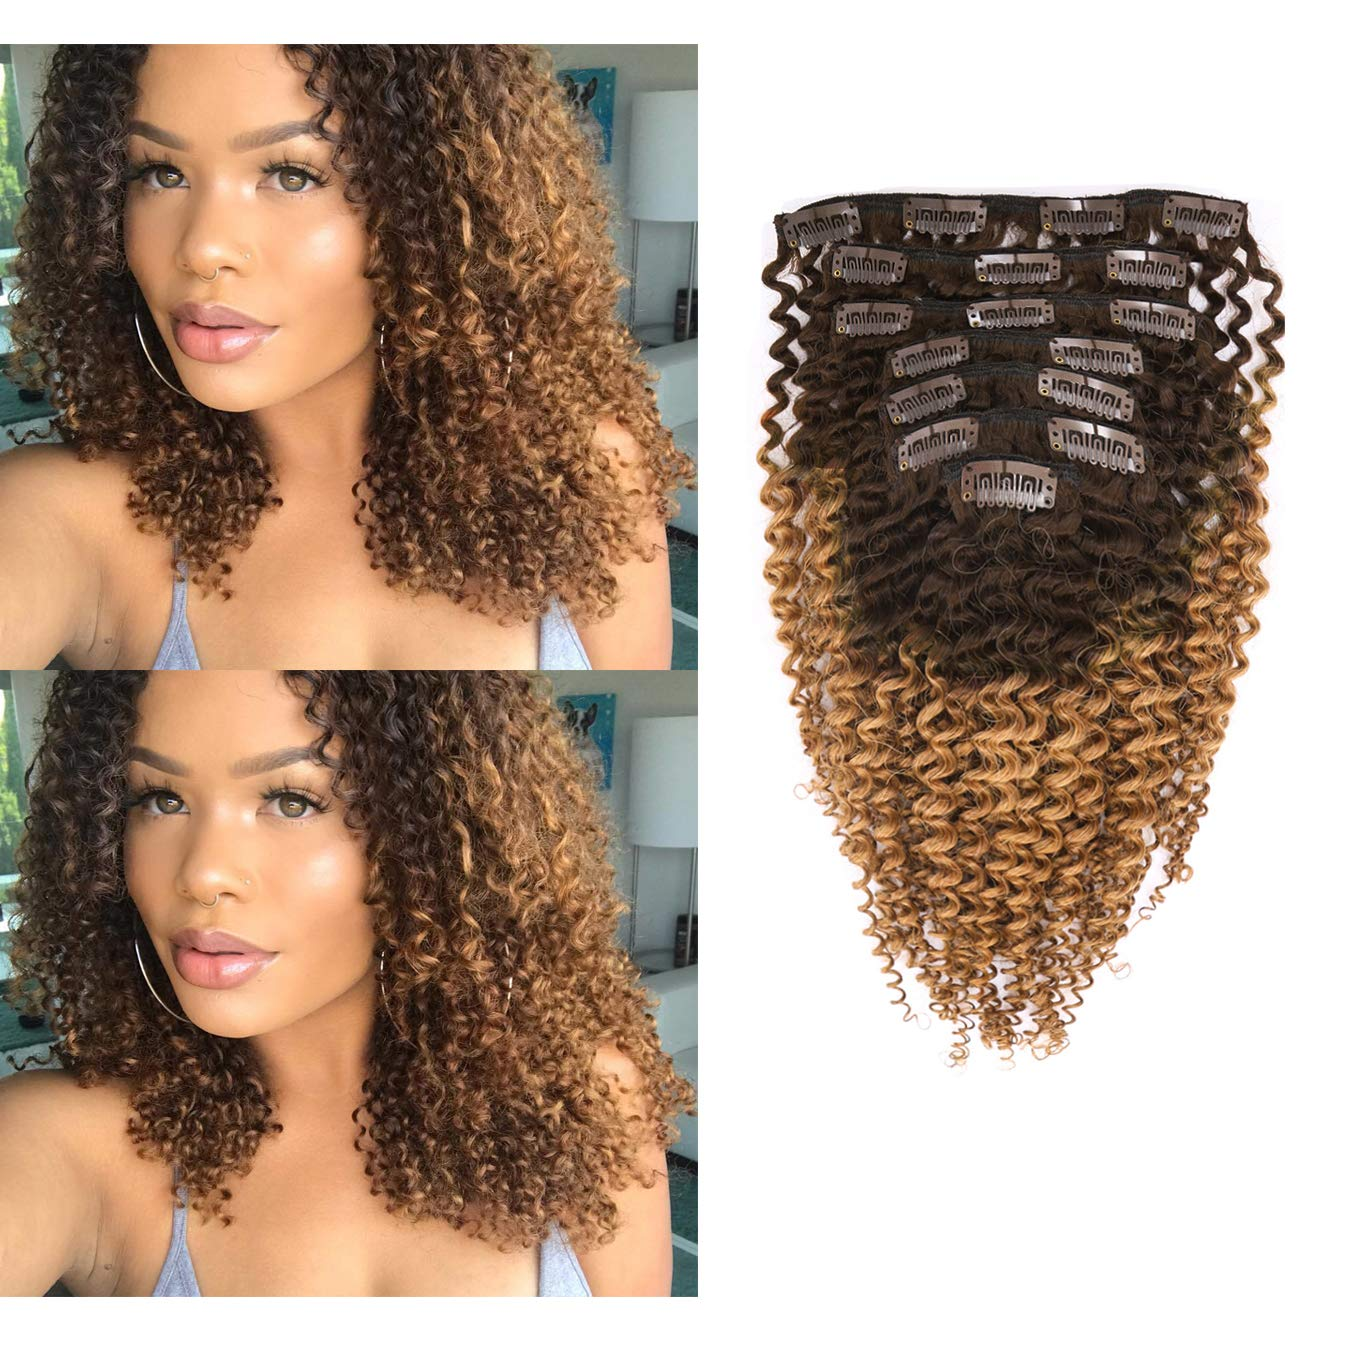 Anrosa Kinky Clip ins 3C 3B Kinkys Curly Ombre Hair Extensions Clip in Human Hair Afro Kinky Curly Natural Black with Brown Blonde Color Thick Hair for African American 1B/27 14 Inch 120g by Anrosa